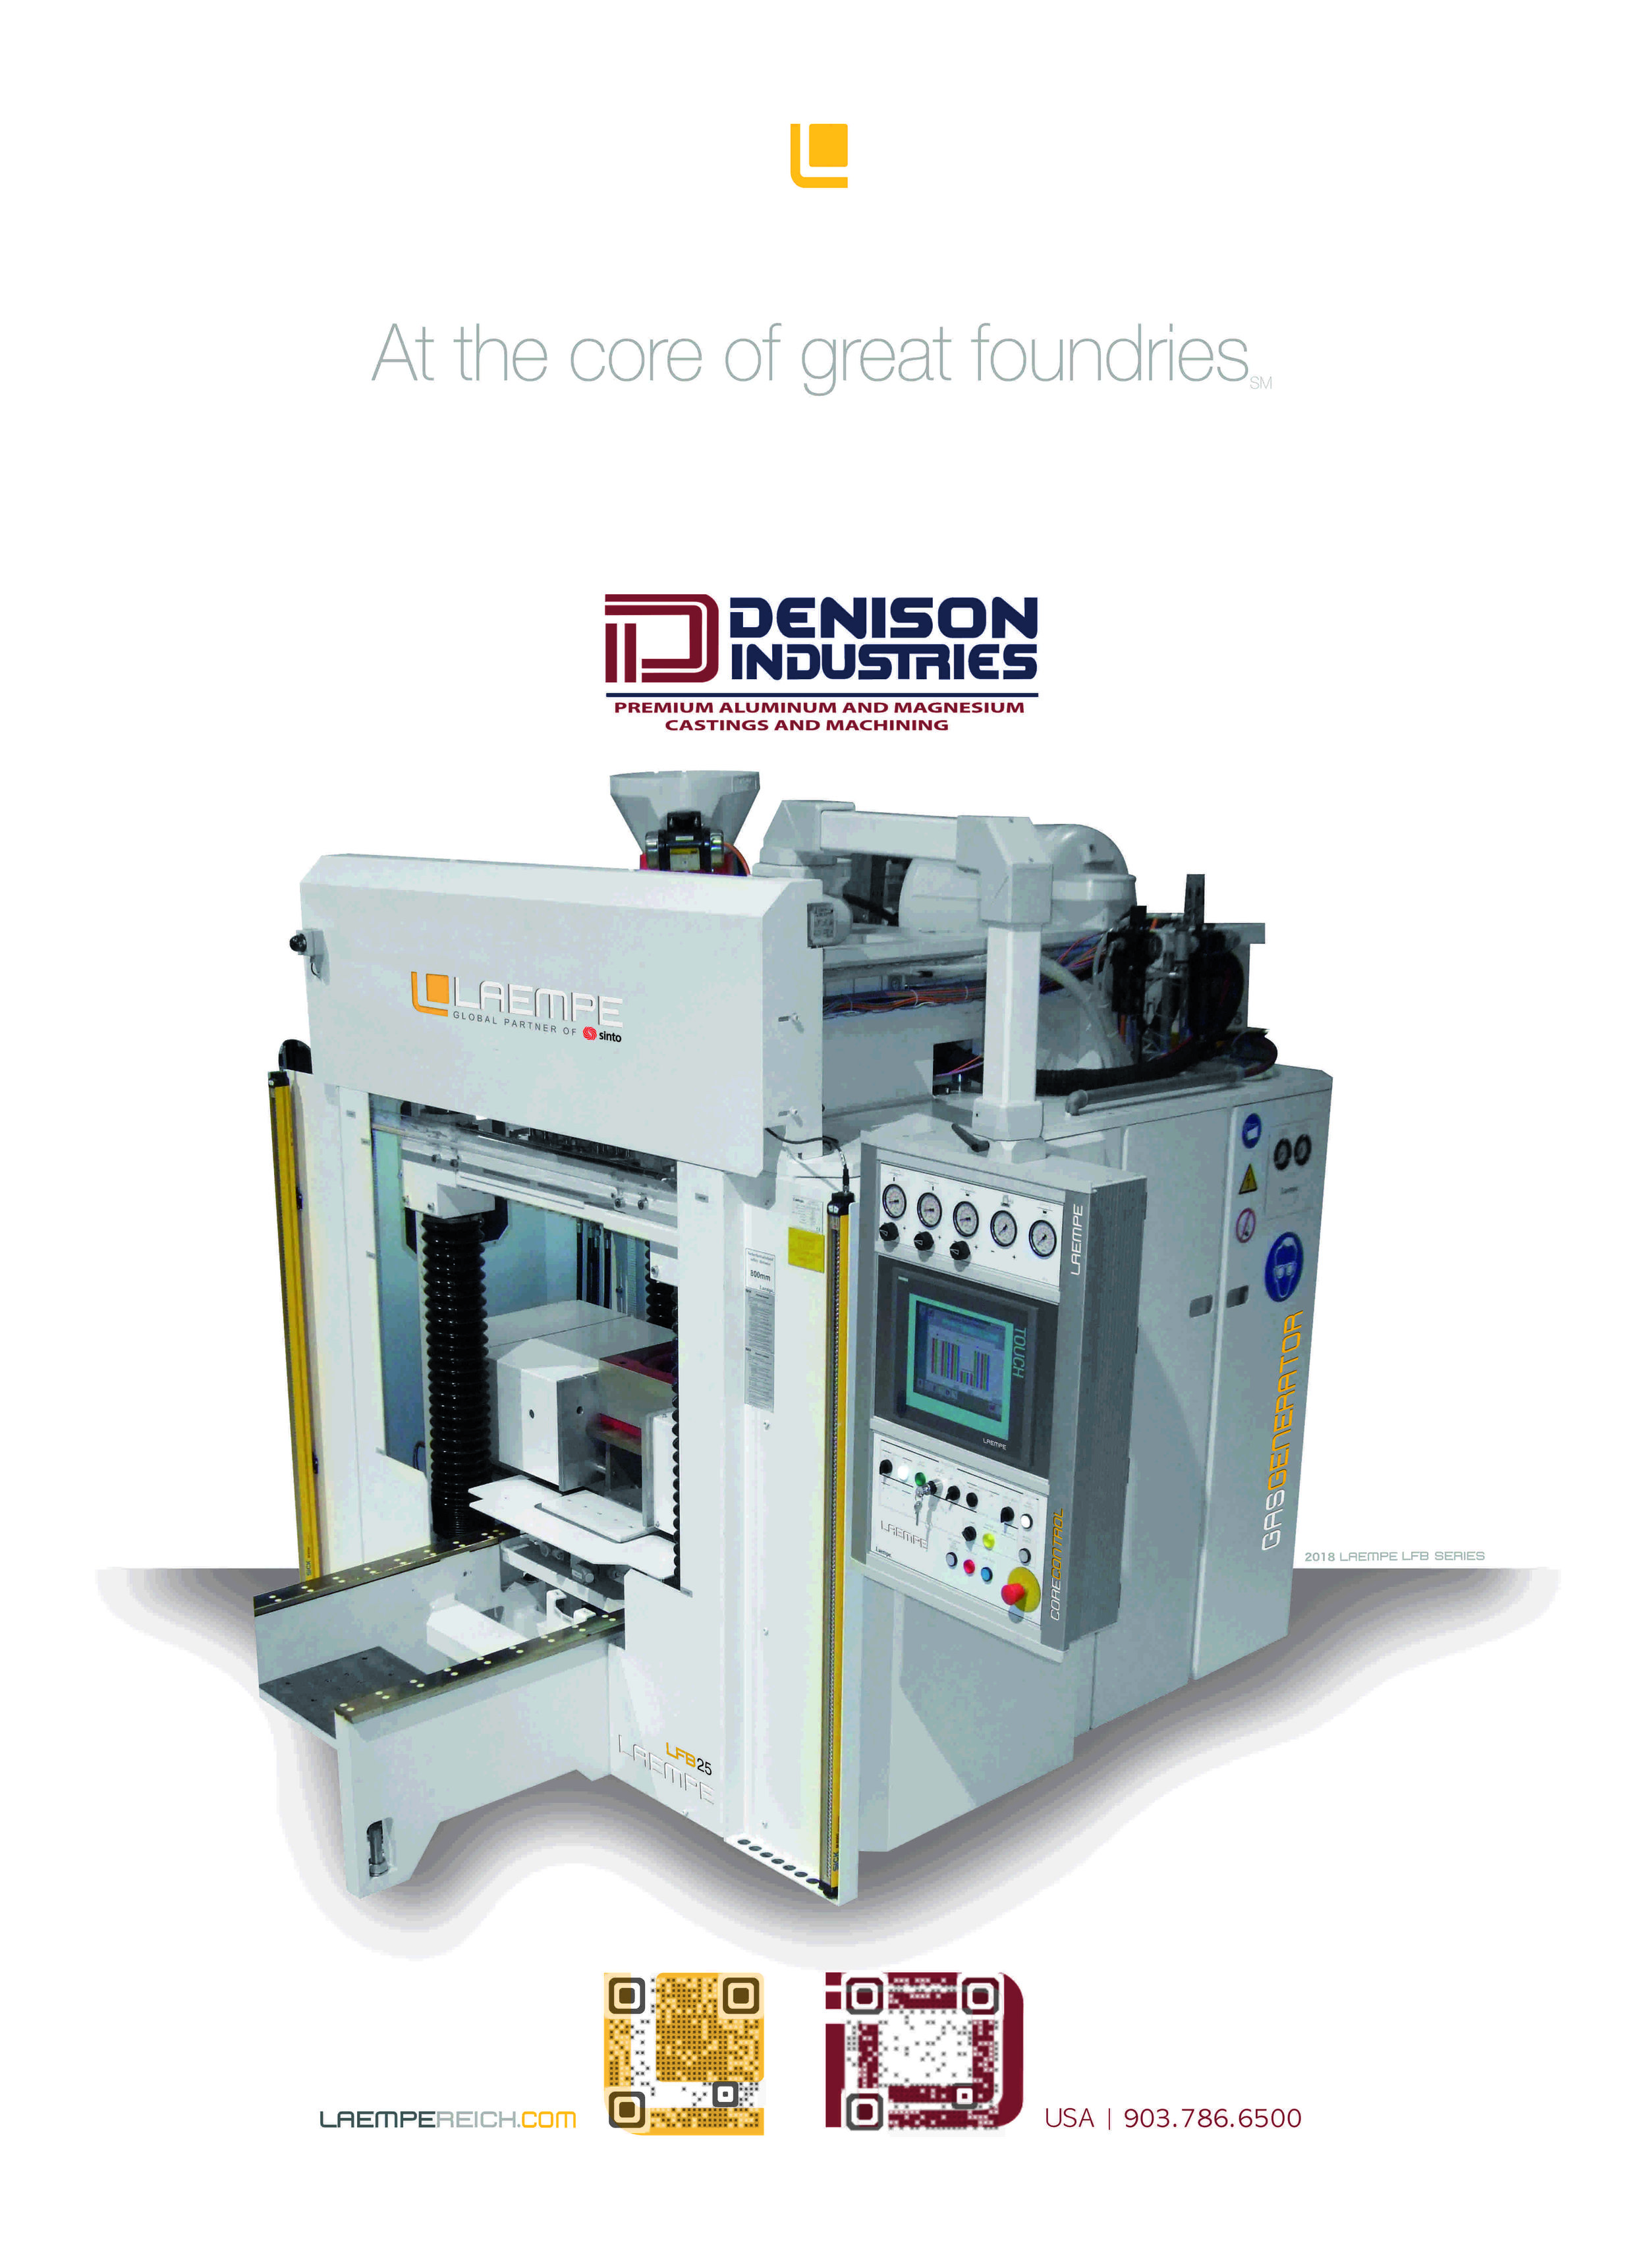 Denison Industries | At the Core of Great Foundries 2017.jpg